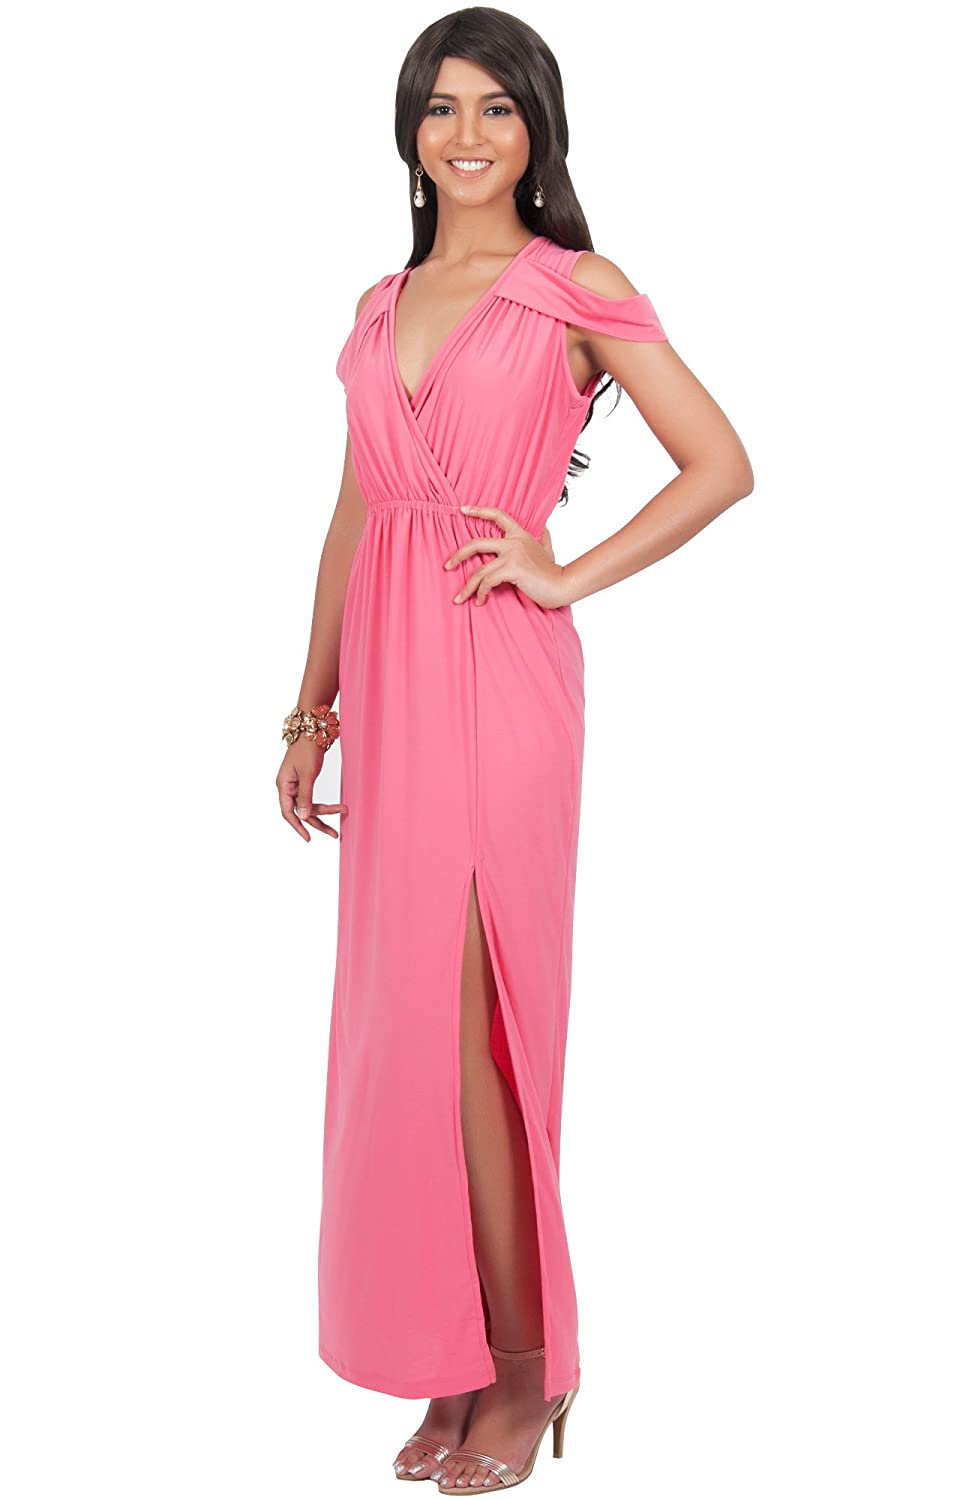 879ee808269f8 Amazon.com  KOH KOH Plus Size Womens Long Sexy Off Shoulder Summer Split  Slit V-Neck Evening Party Wedding Guest Bridesmaid Prom Sundress Gown Gowns  Maxi ...